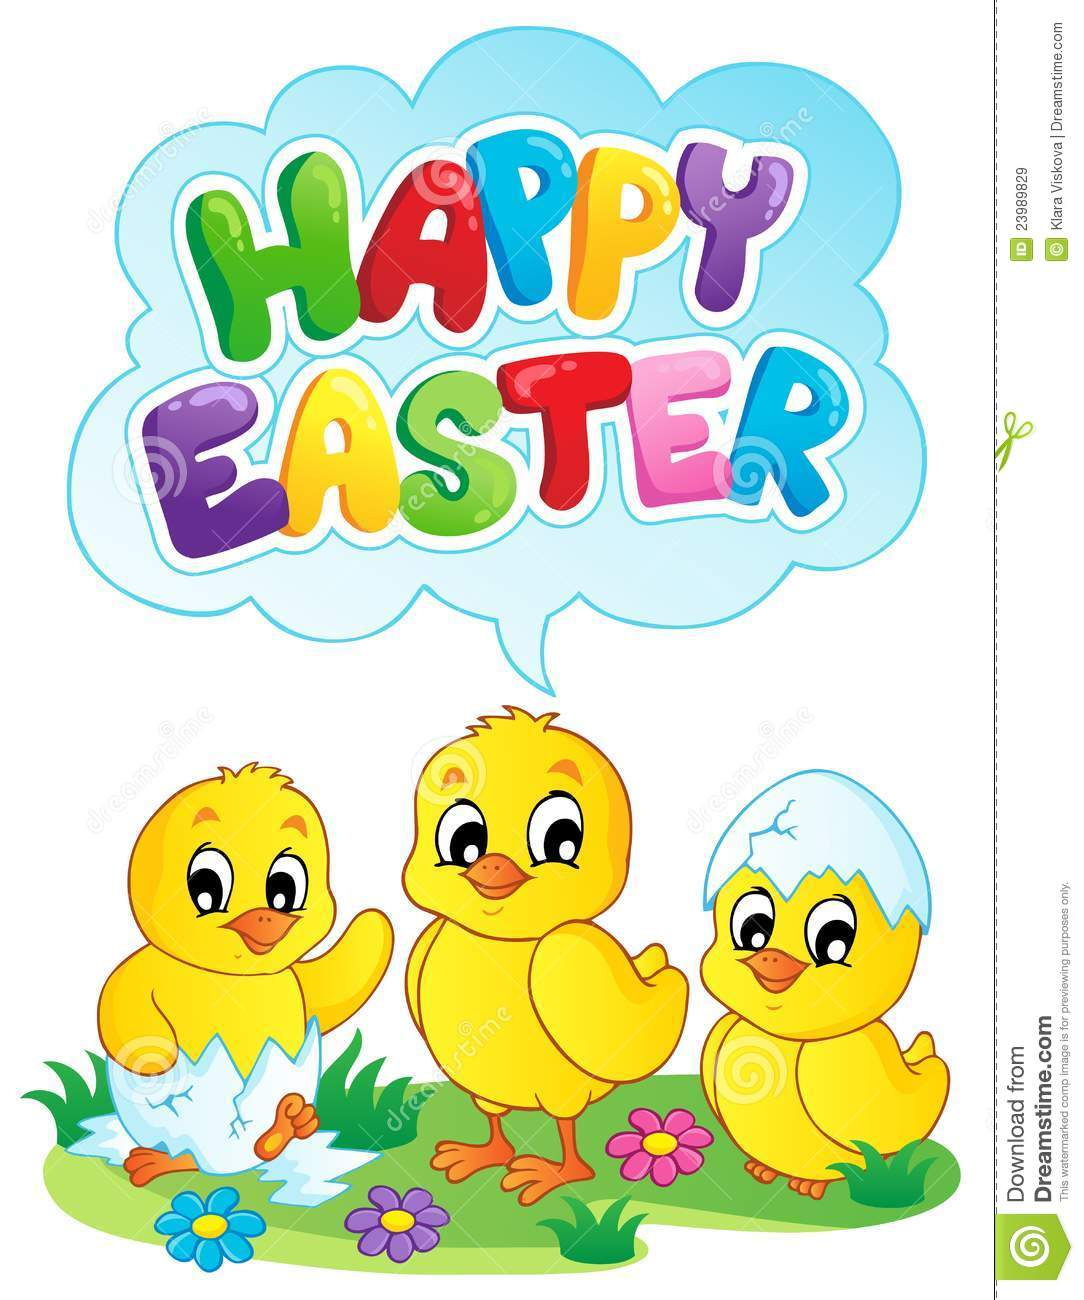 Happy Easter Sign Theme Image 5 Stock Vector ...